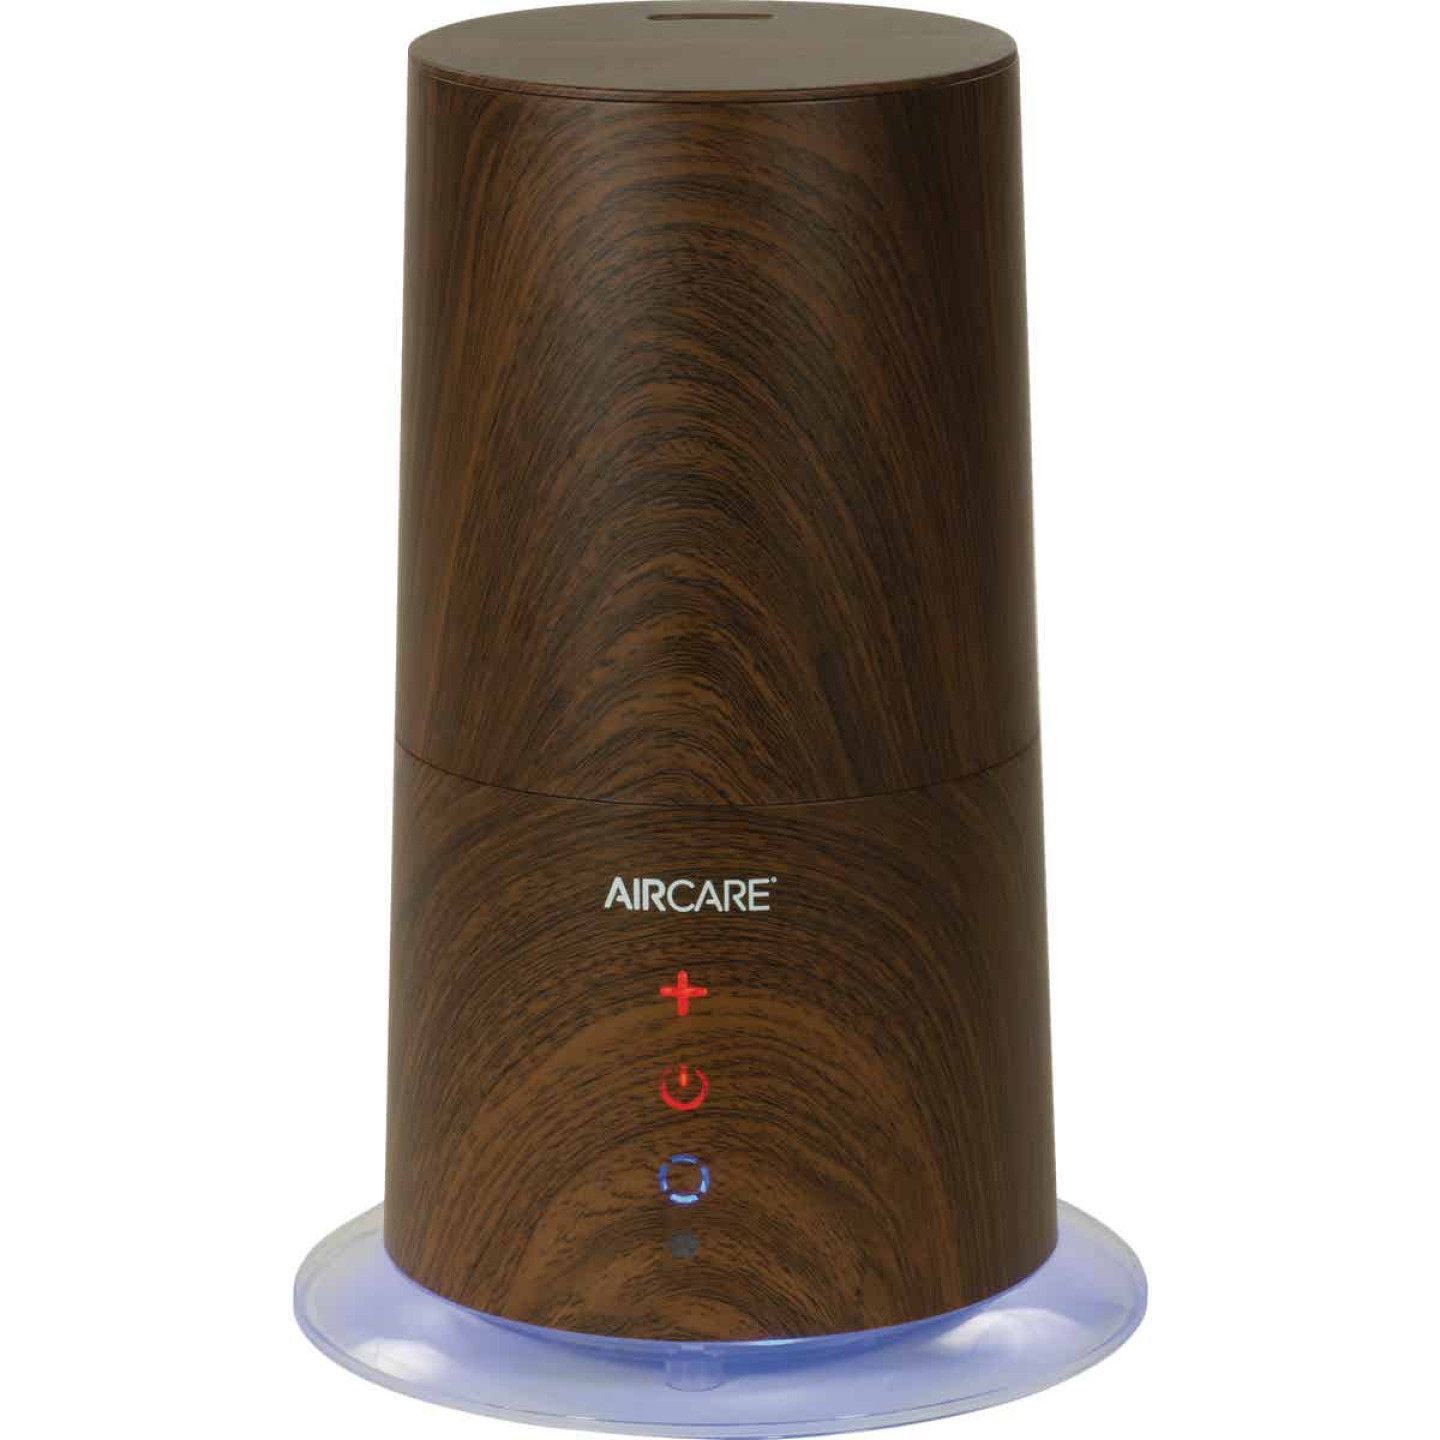 AirCare Mesa 0.8 Gal. Capacity 750 Sq. Ft. Warm/Cool Mist Ultrasonic Humidifier Image 3